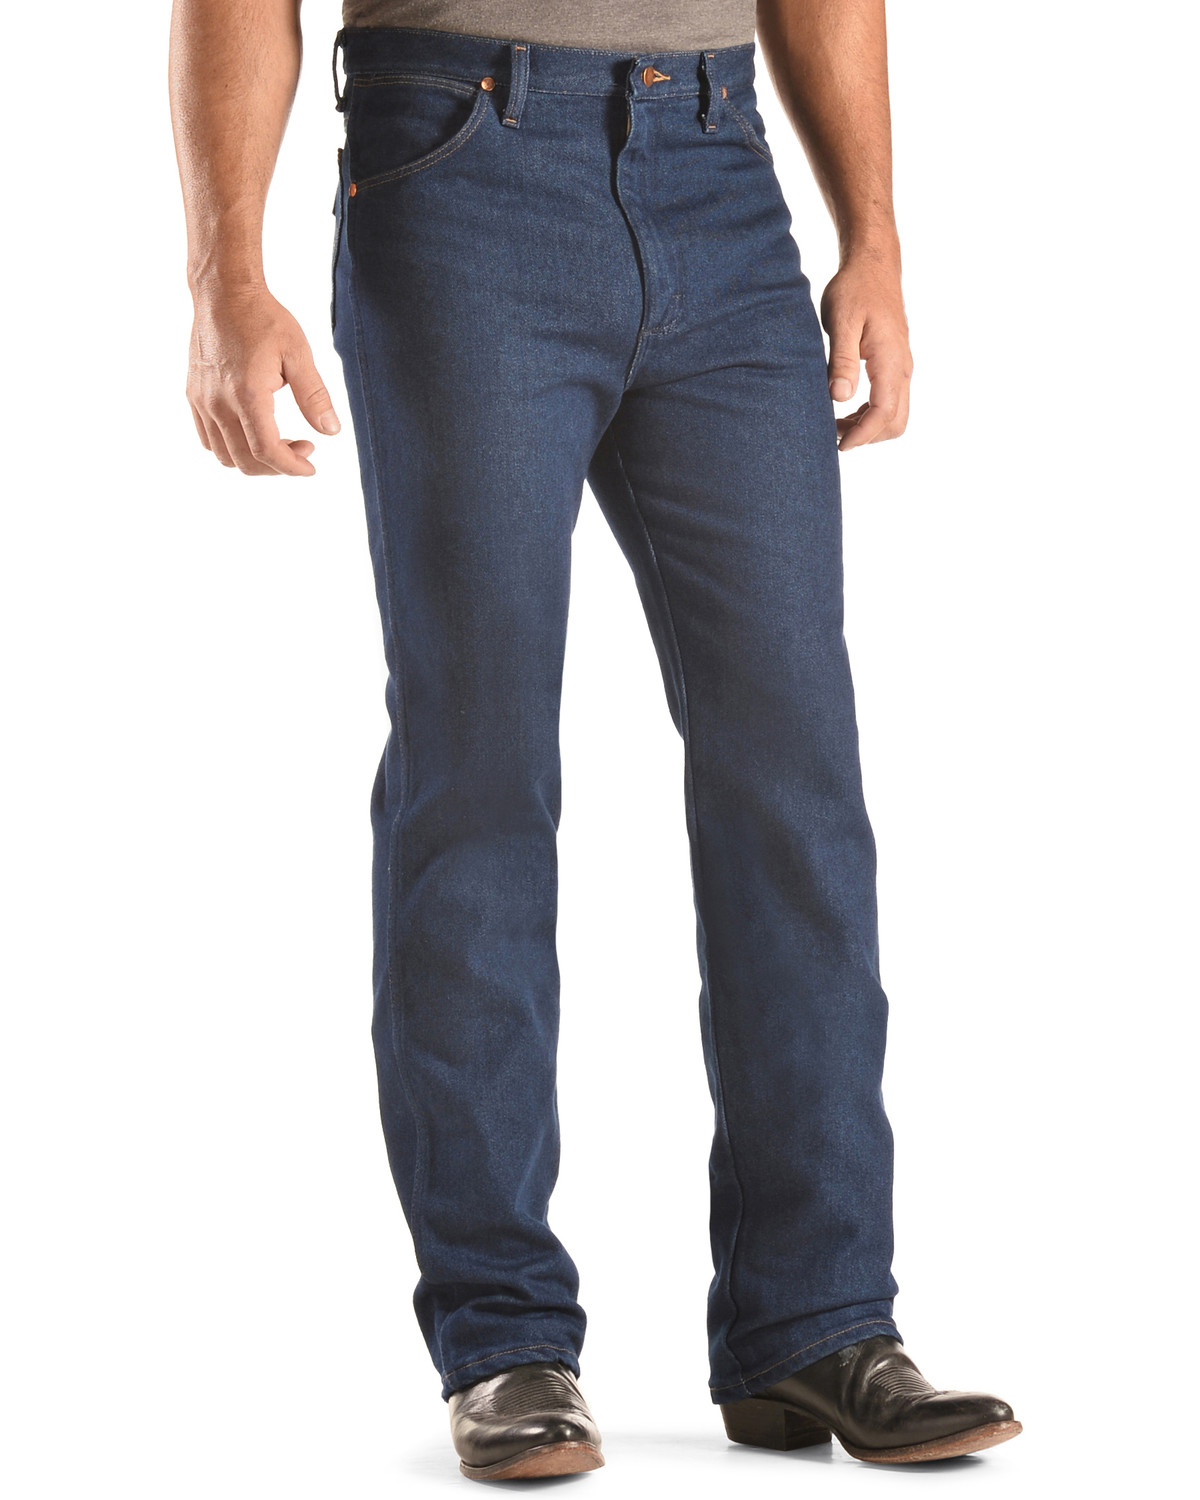 More Details Burberry Faded Slim-Fit Stretch Jeans, Dark Indigo, Size Details Whiskered and faded jeans in stretch denim by Burberry. Five-pocket style; leather logo patch on back. Adjustable tabs for room-to-grow fit. Slim fit through straight legs. Rolled cuffs reveal check trim.